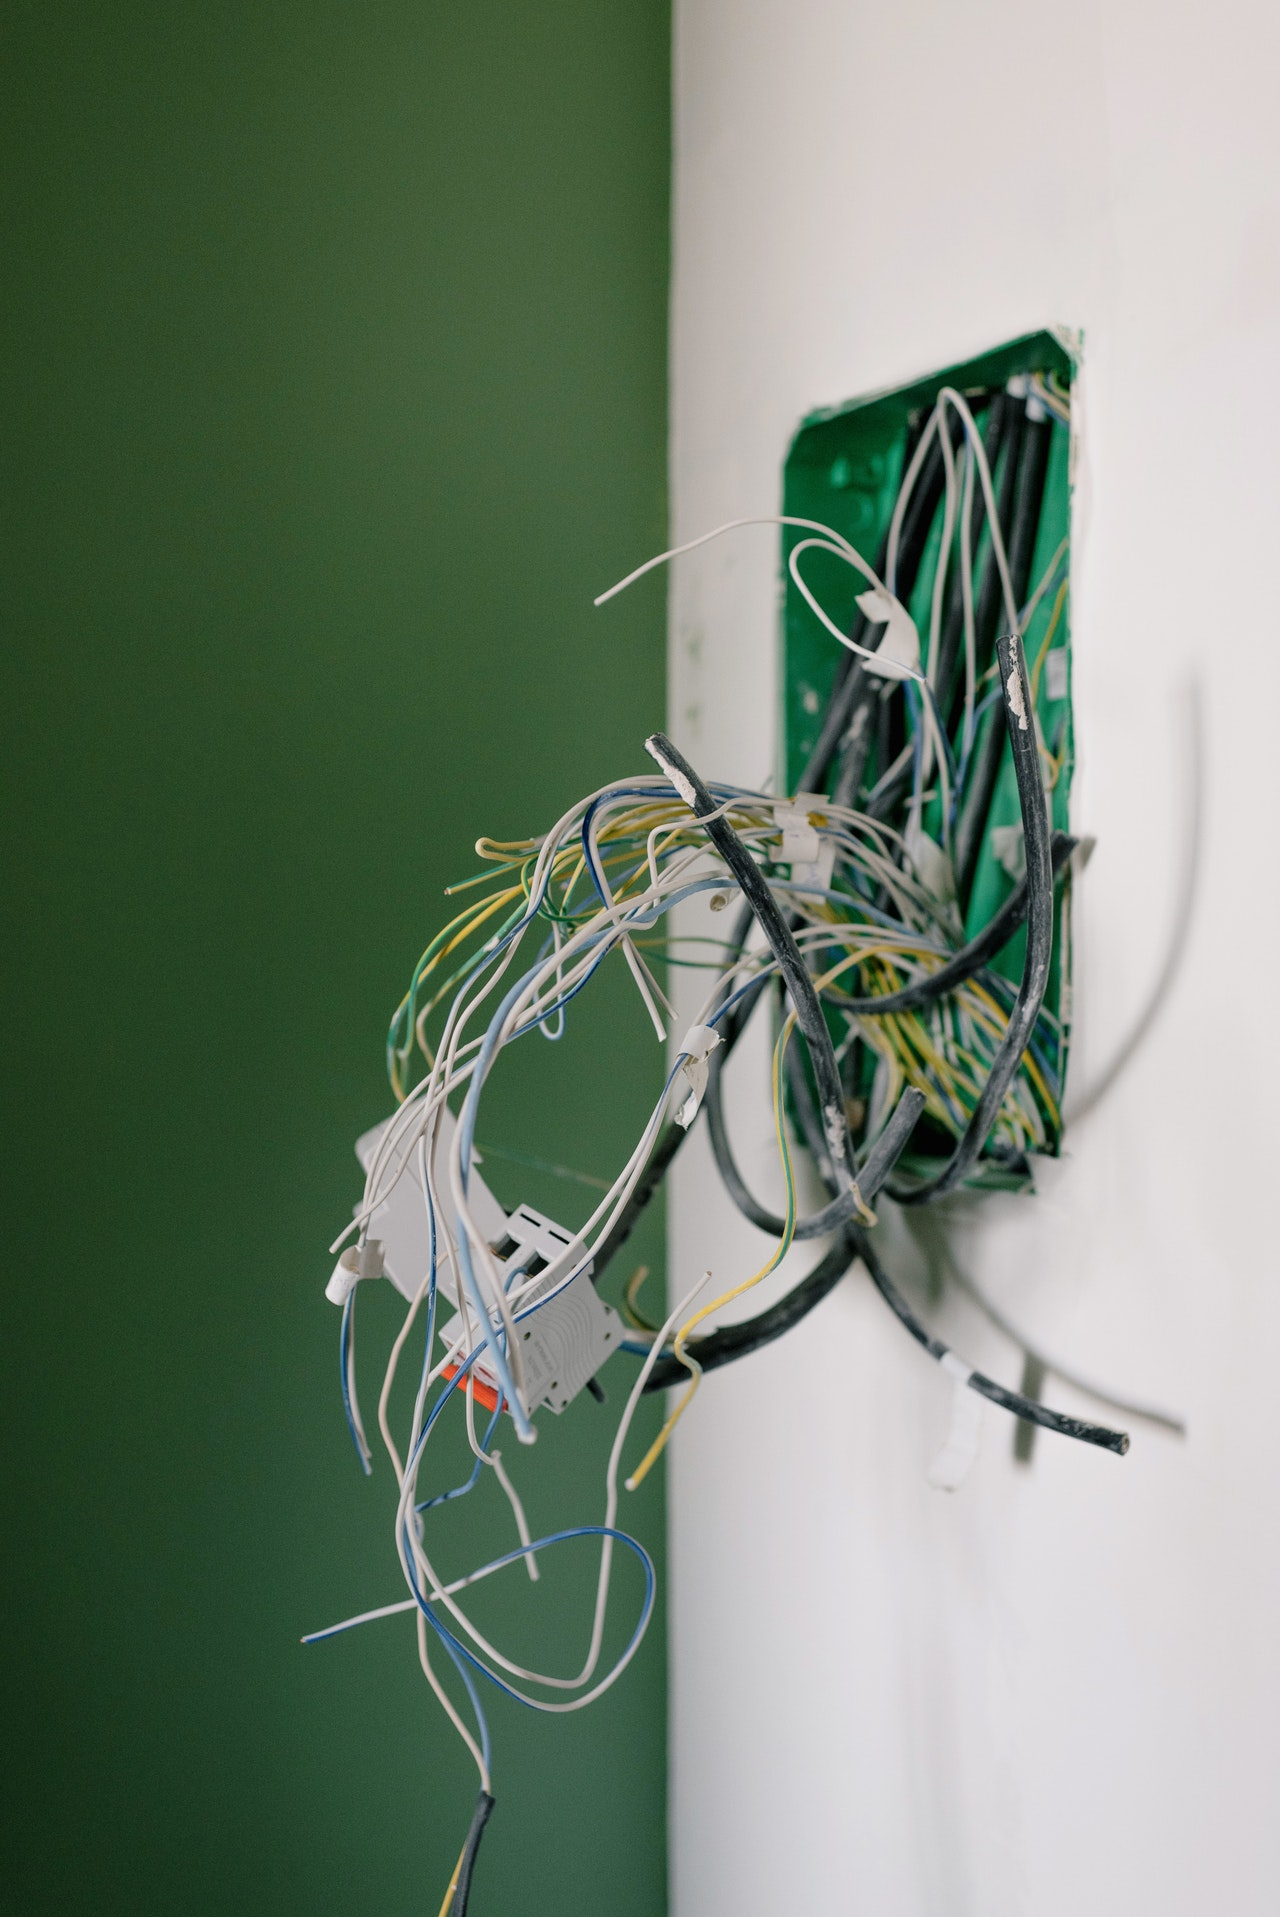 local electrician on-call